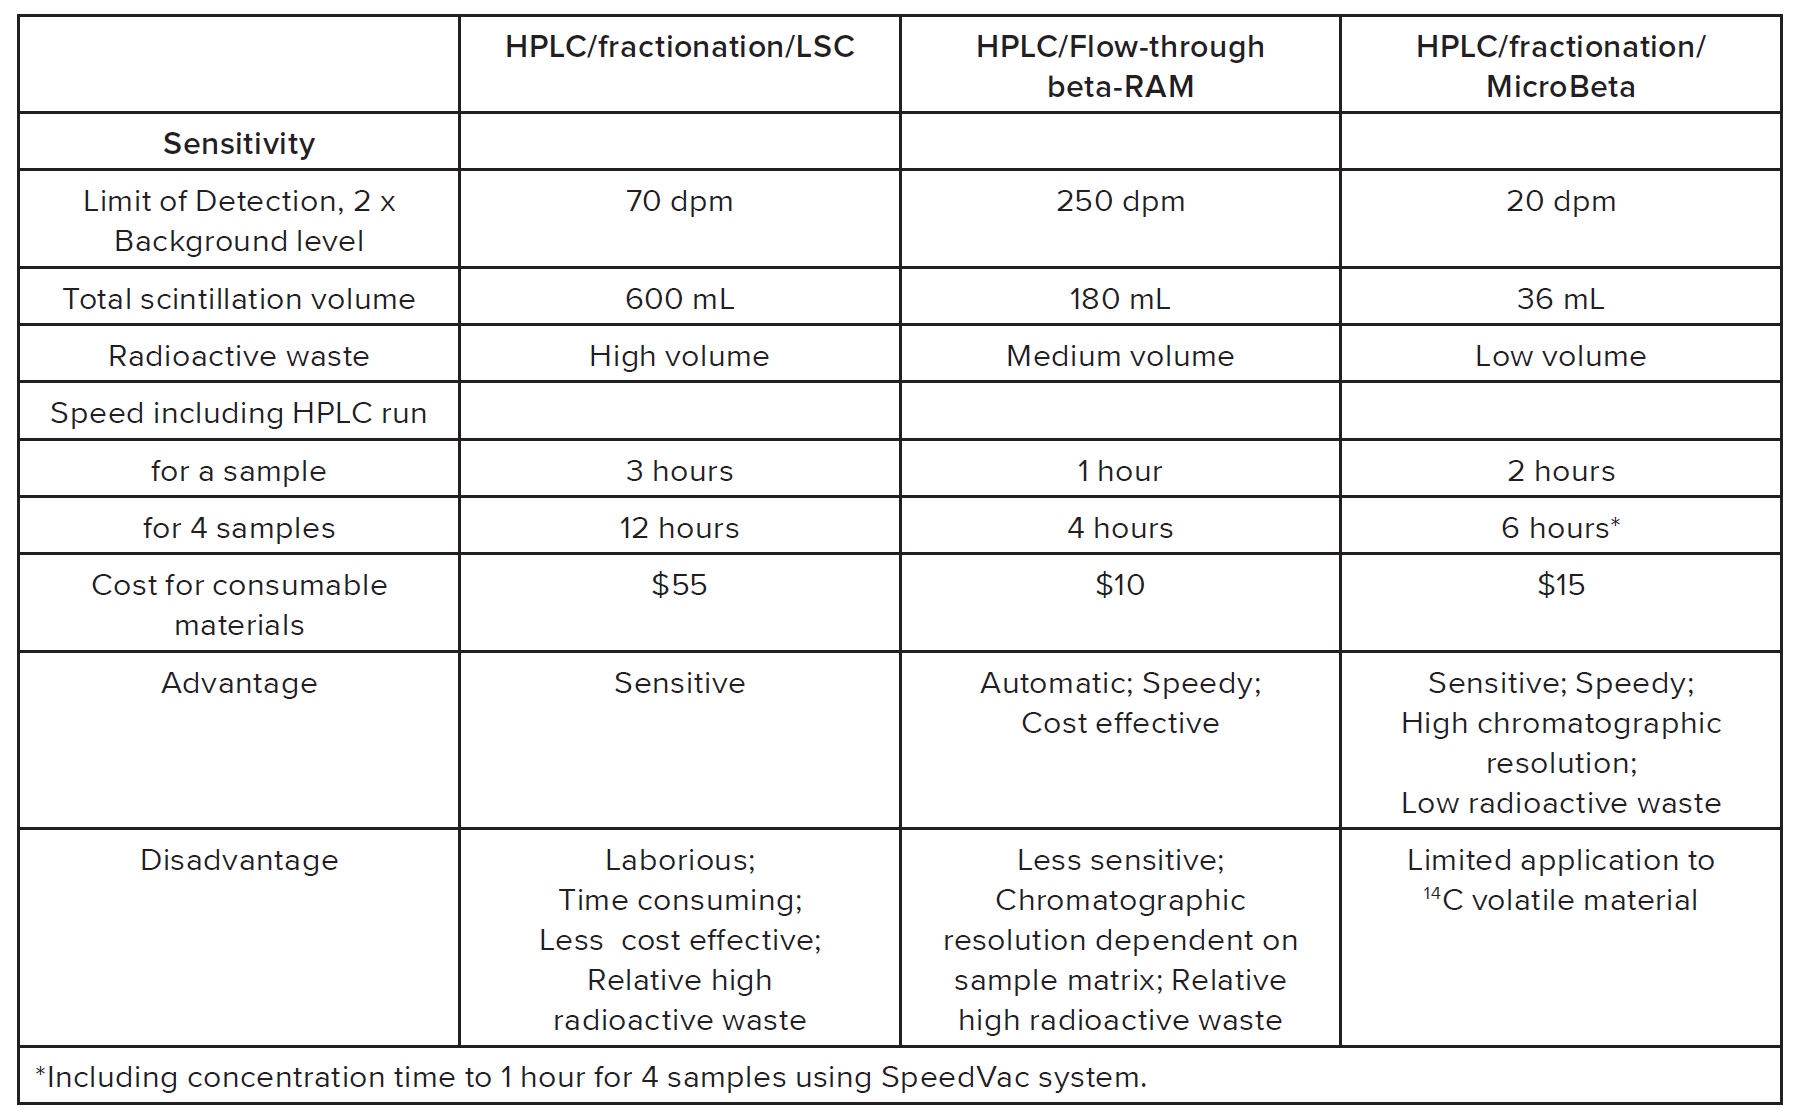 Comparison in terms of sensitivity, speed, cost, and chromatographic resolution pt.2